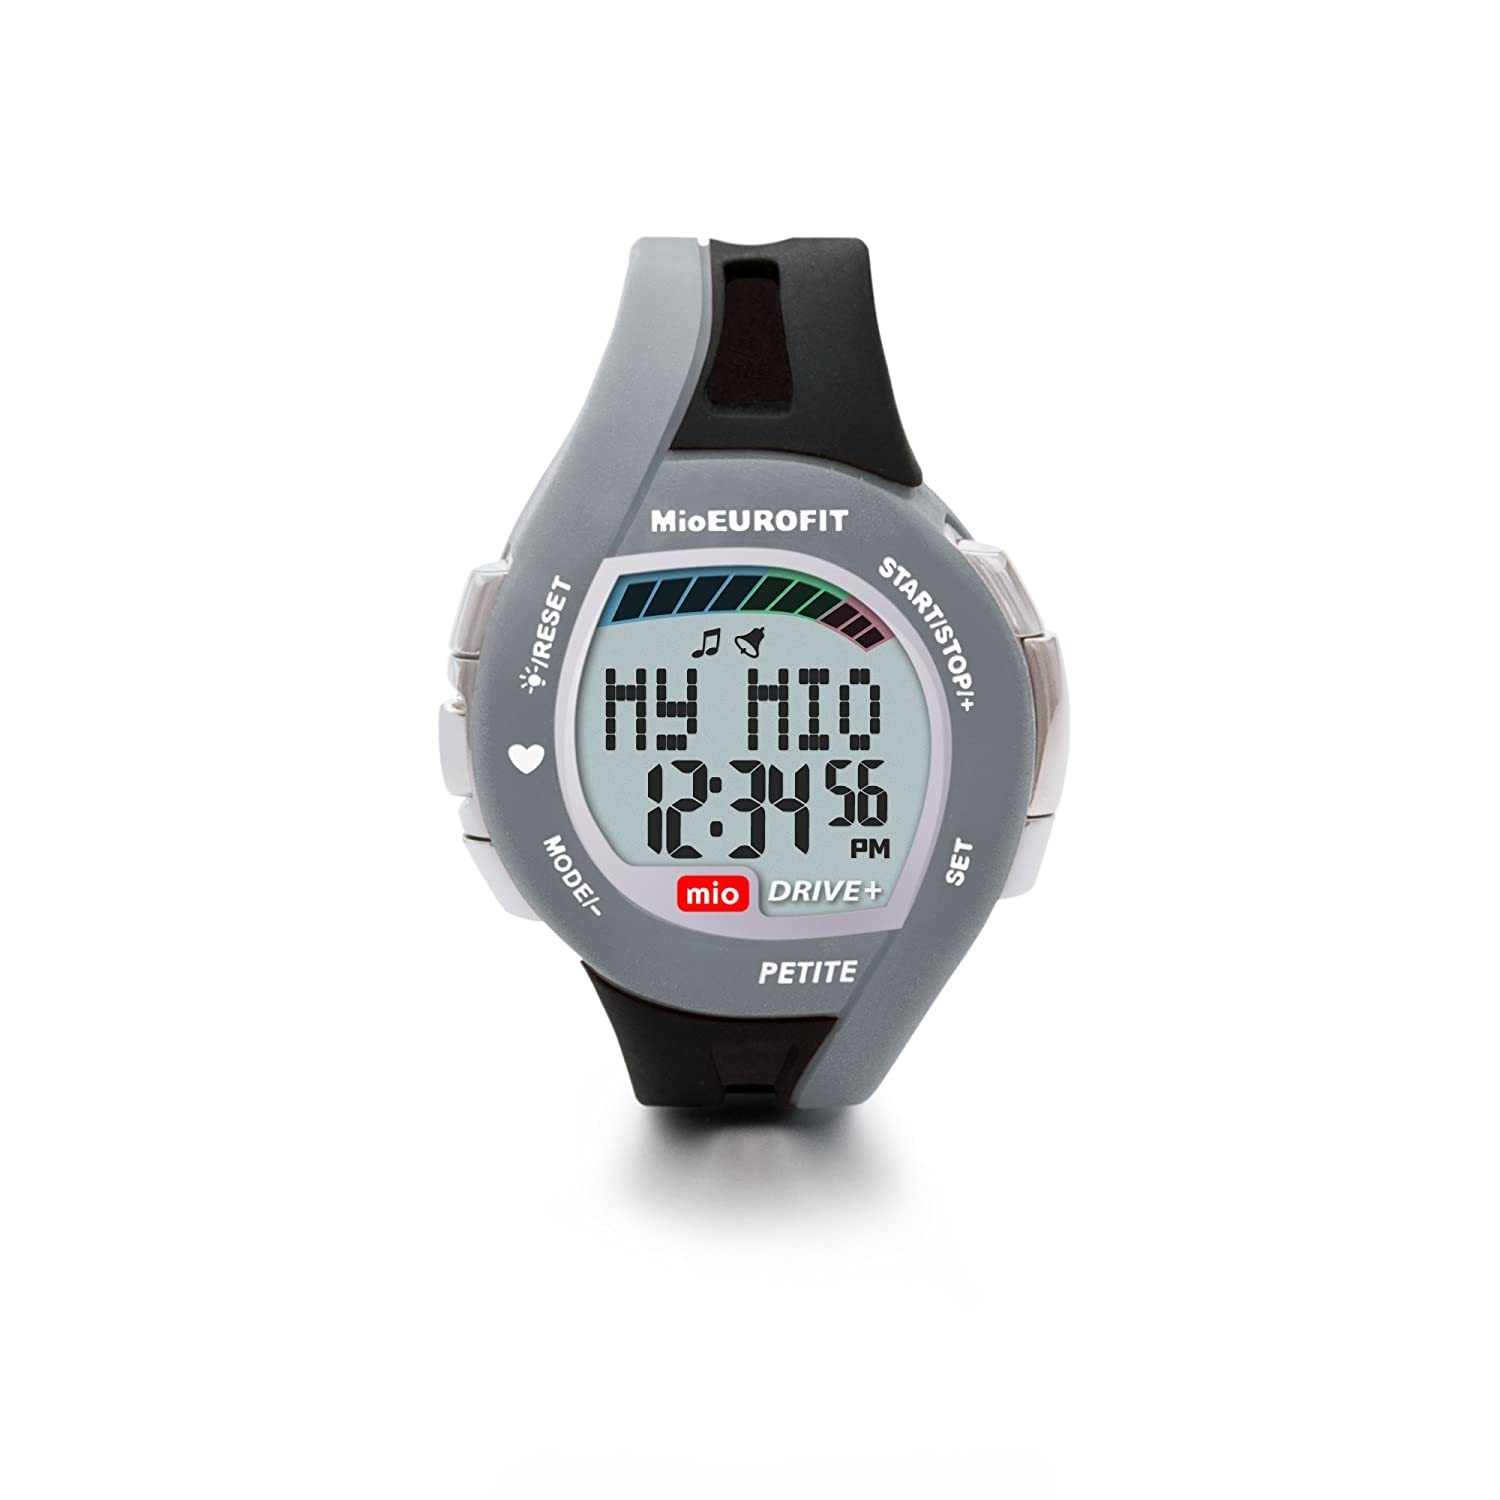 watches outdoors personal dp mid watch size heart amazon trainer rate com sports timex monitor